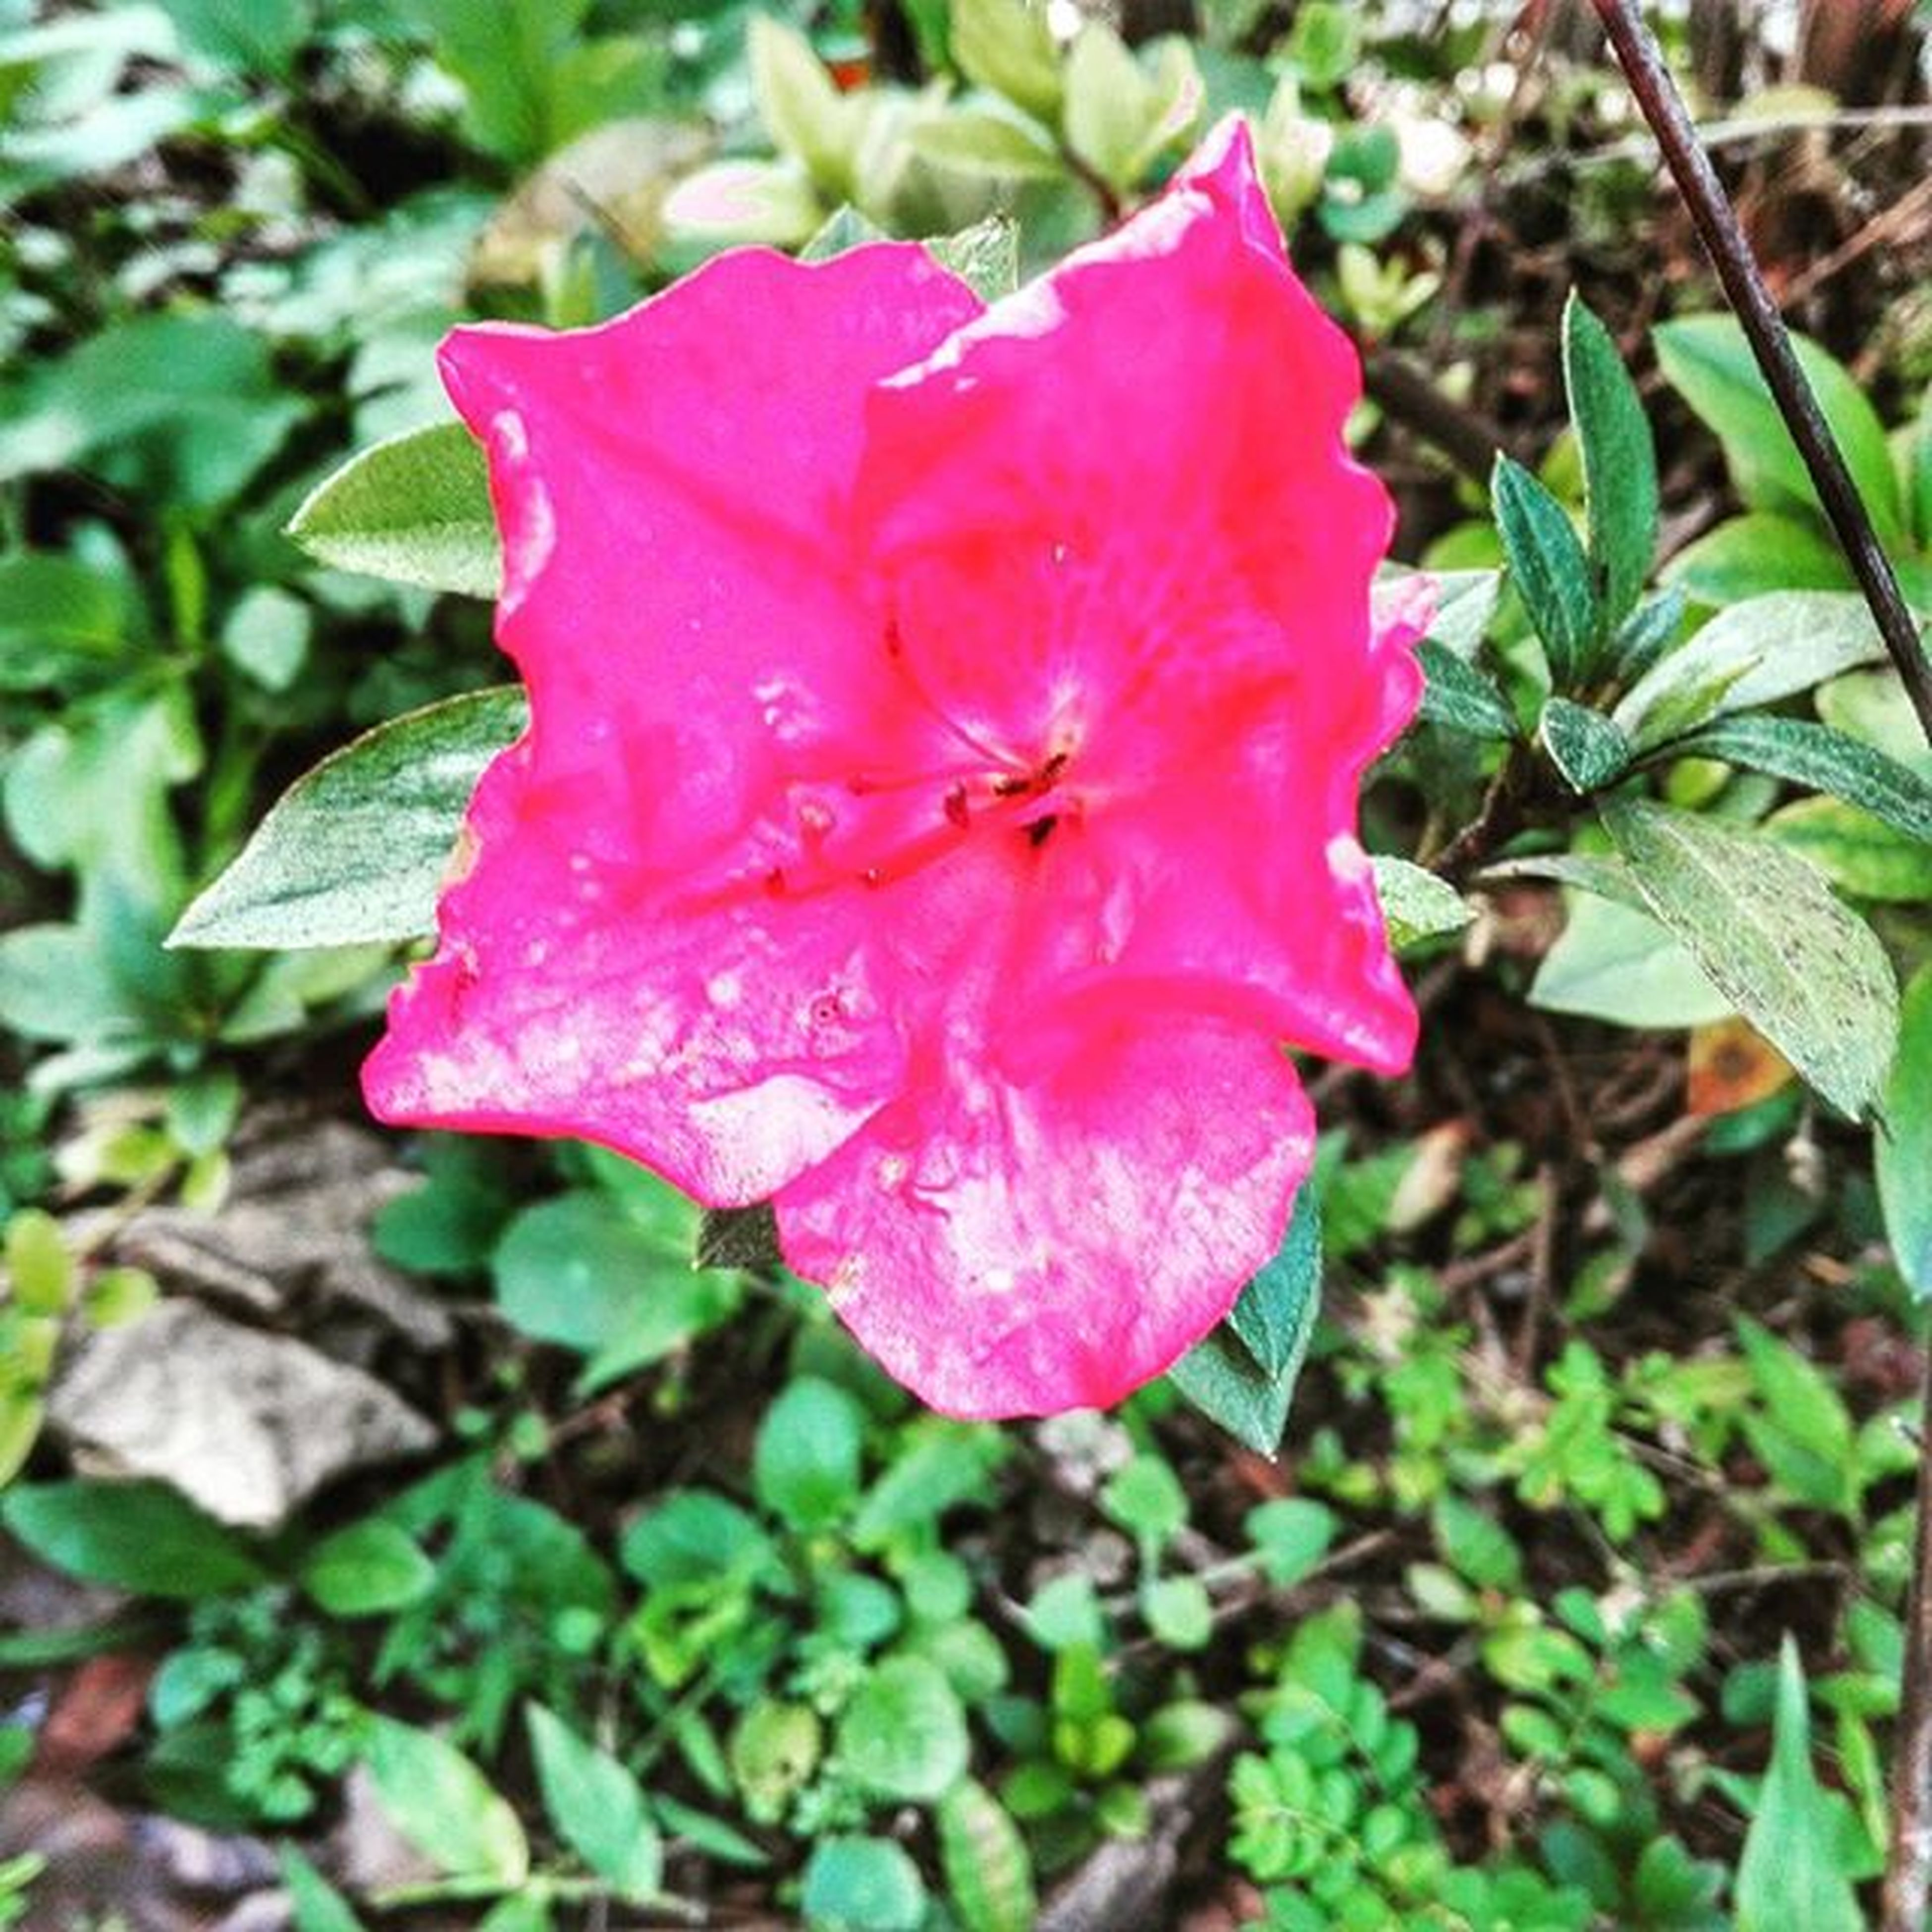 flower, petal, freshness, fragility, flower head, pink color, growth, beauty in nature, close-up, blooming, single flower, nature, focus on foreground, plant, leaf, in bloom, pink, drop, wet, pollen